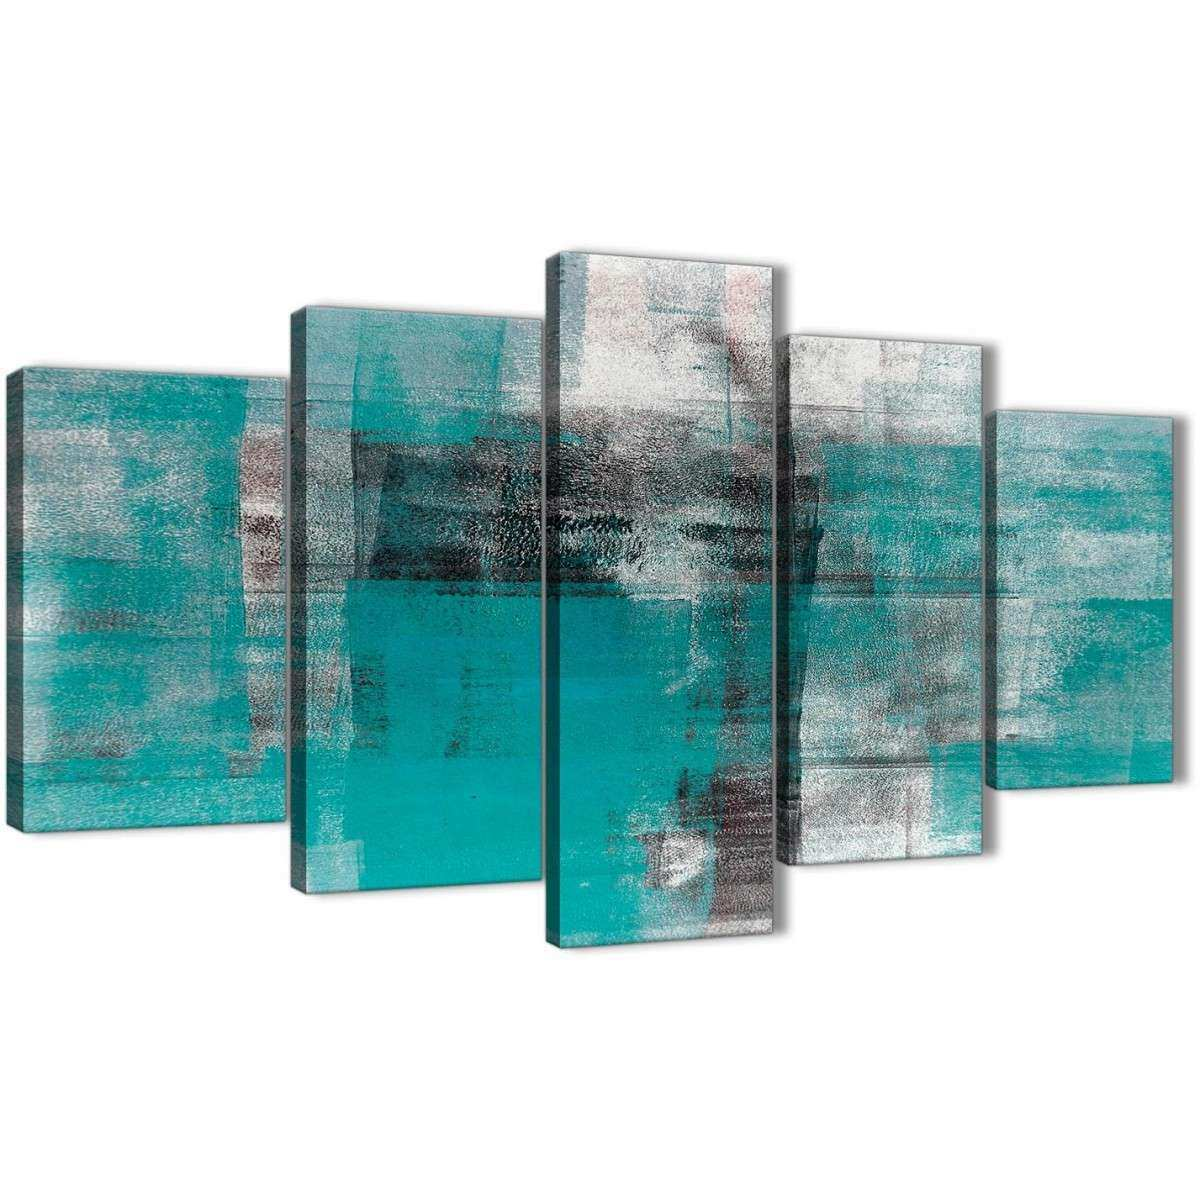 5 Part Teal Black White Painting Abstract fice Canvas